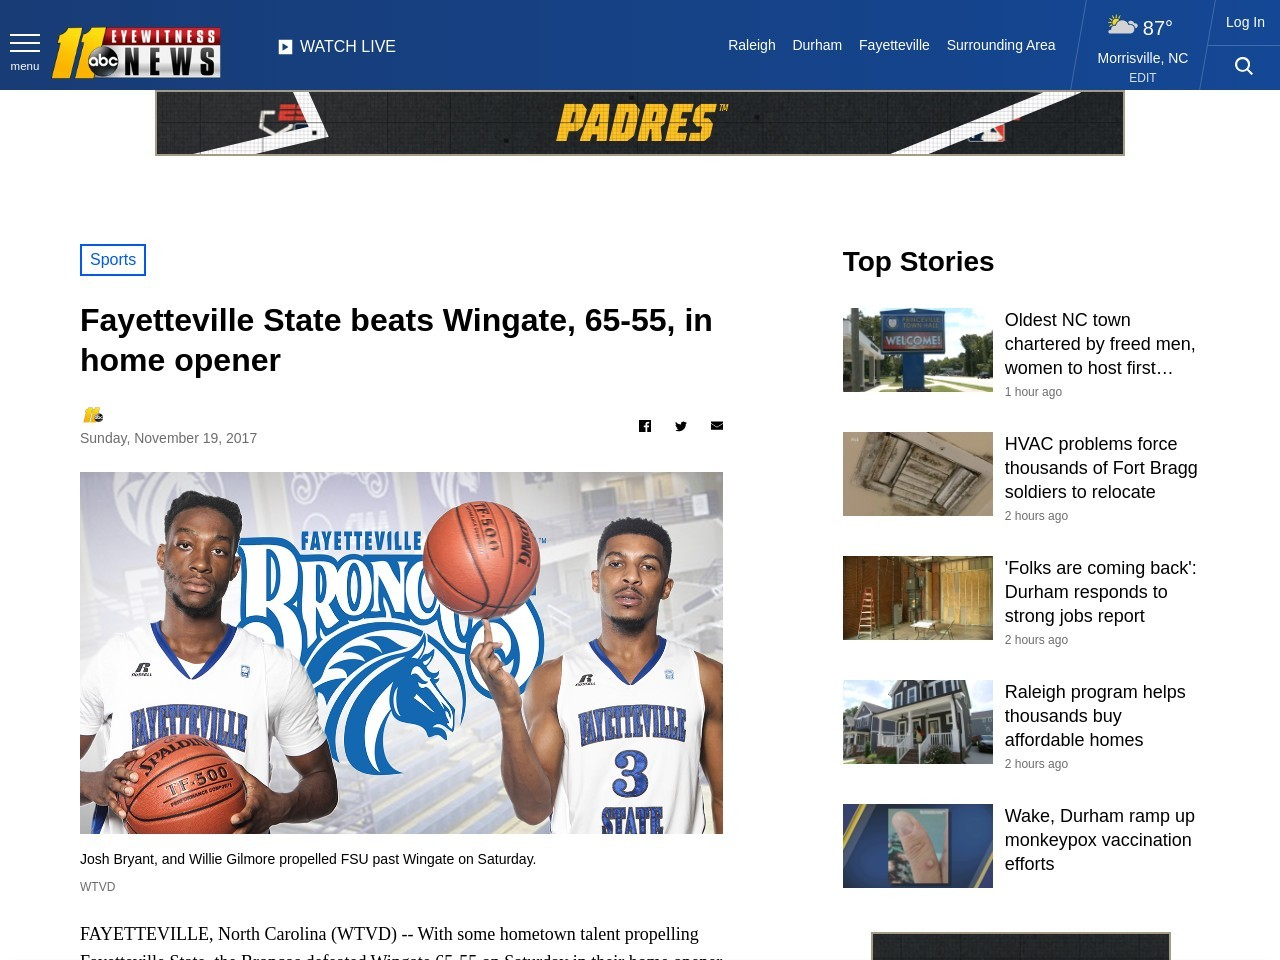 Fayetteville State beats Wingate, 65-55, in home opener